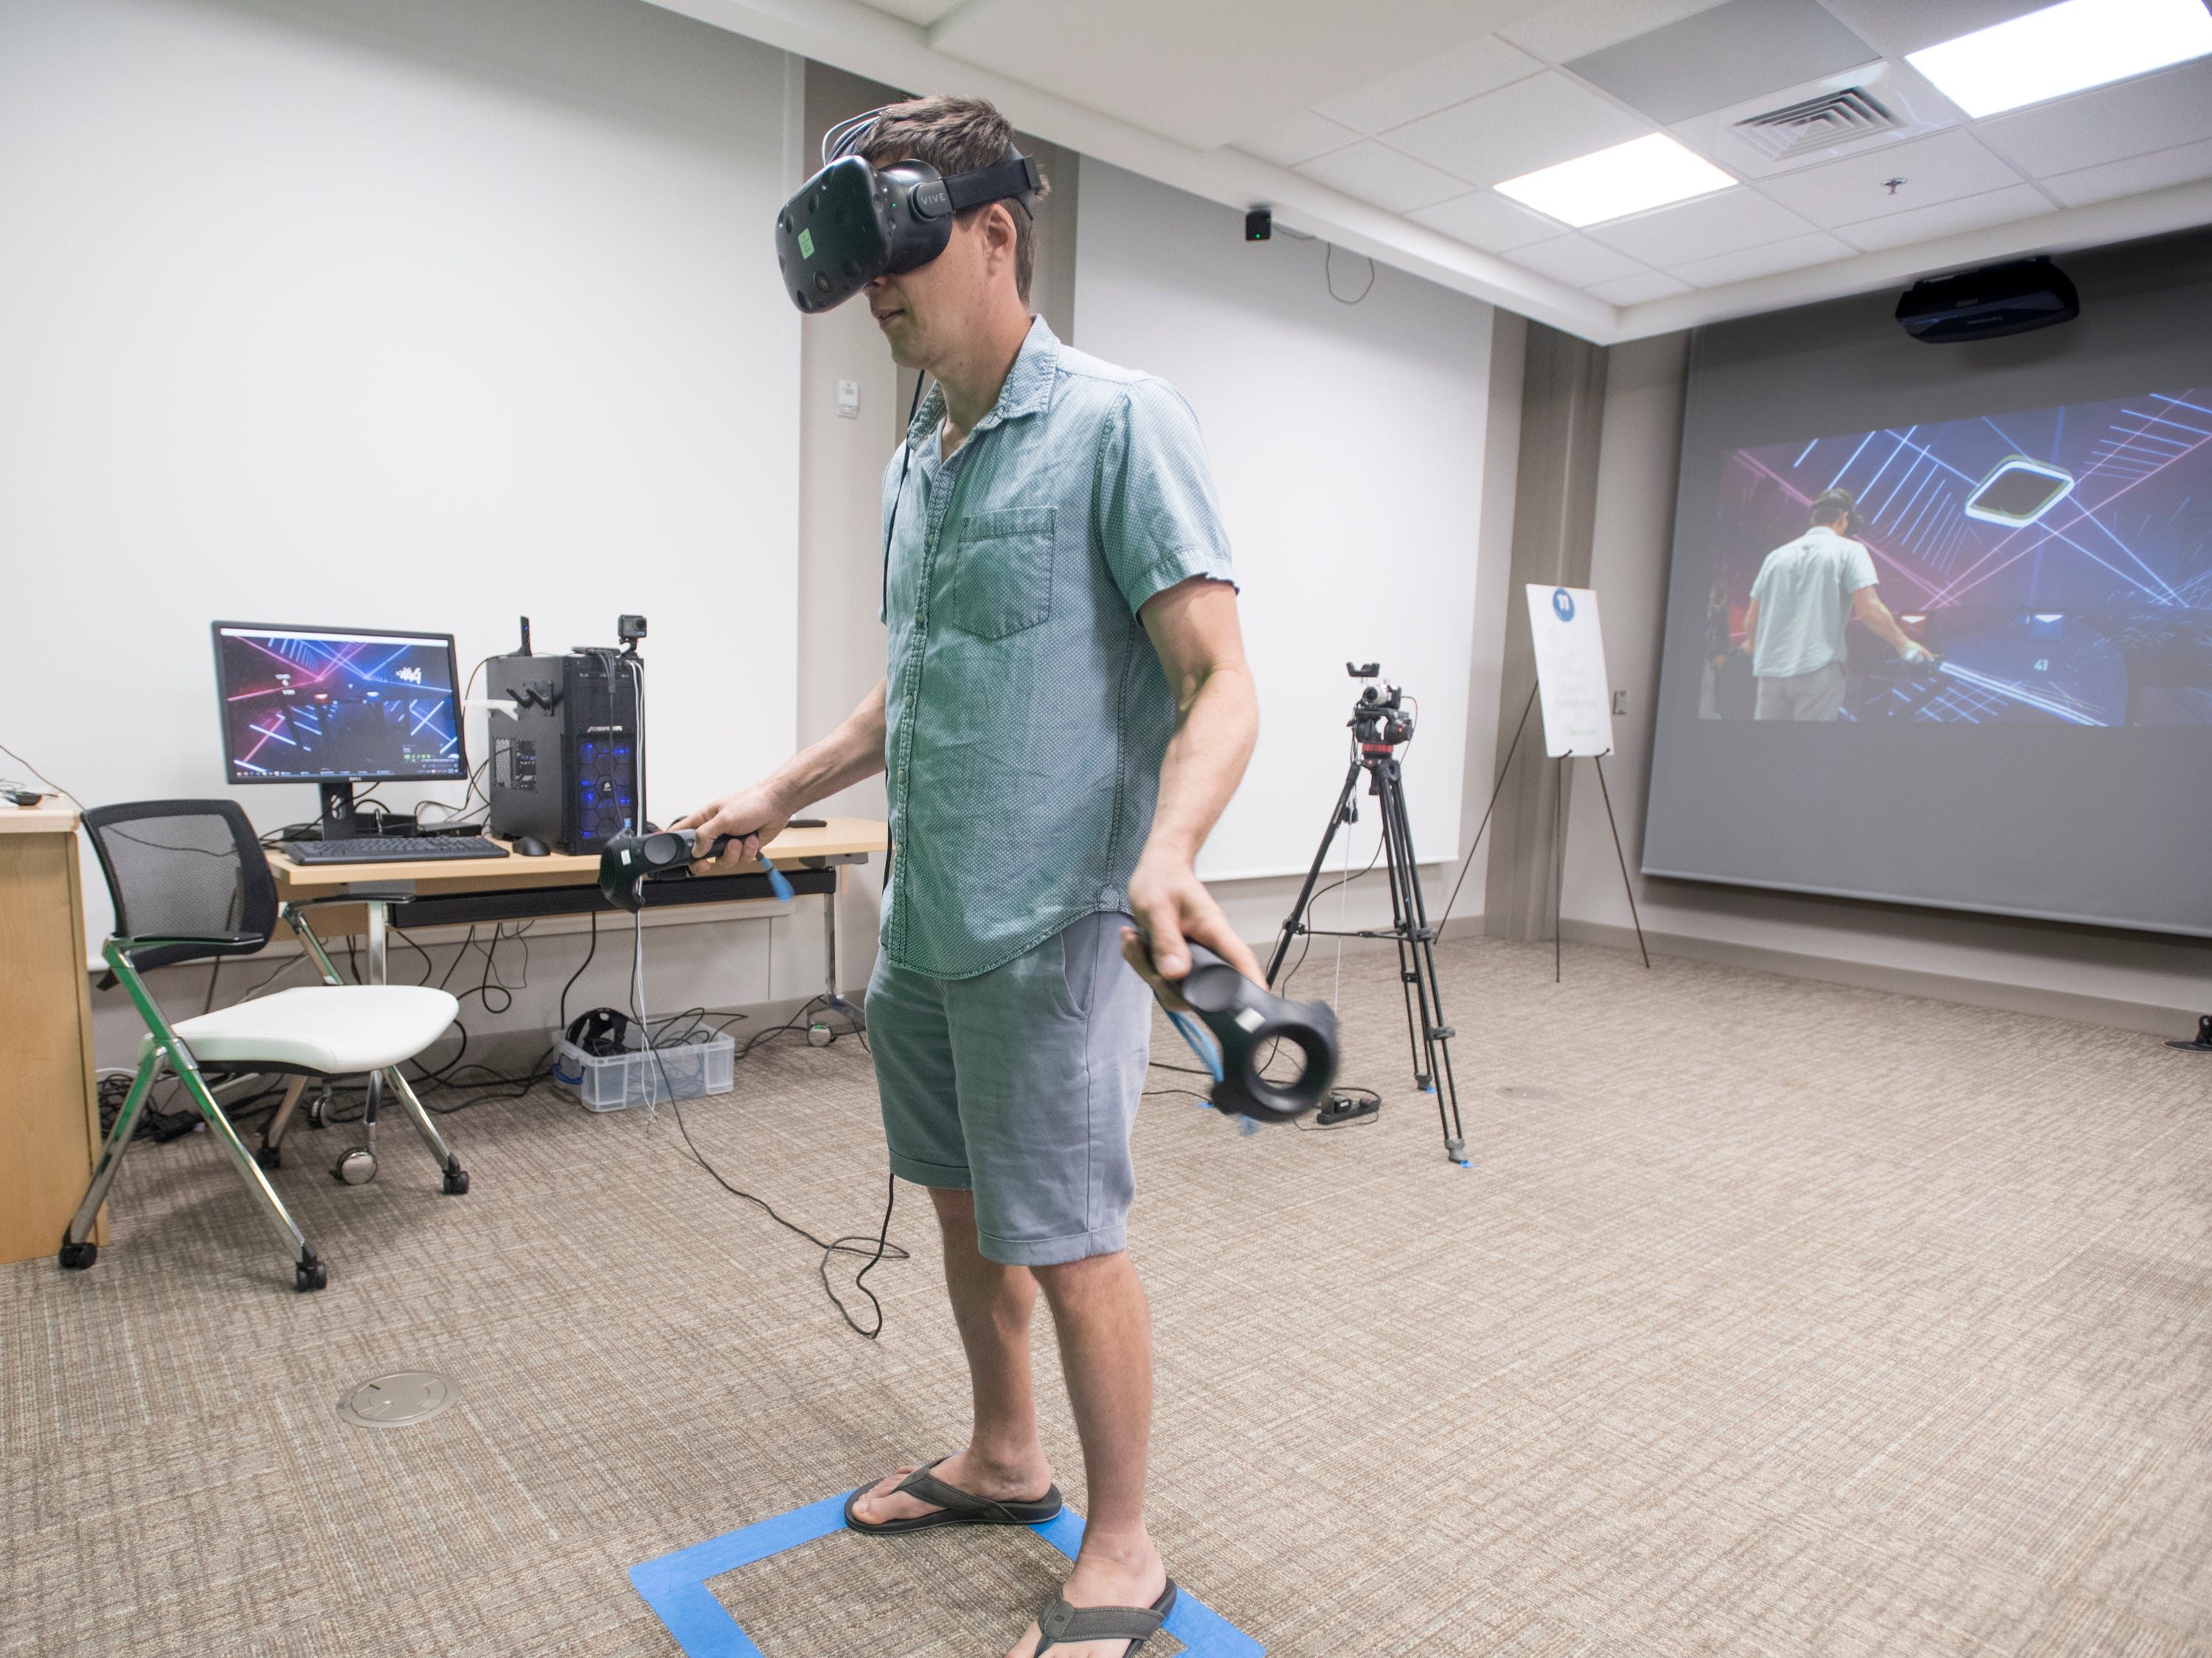 Noah Butler tries out a virtual reality video game during the IHMC Open House in downtown Pensacola on Friday, April 12, 2019.